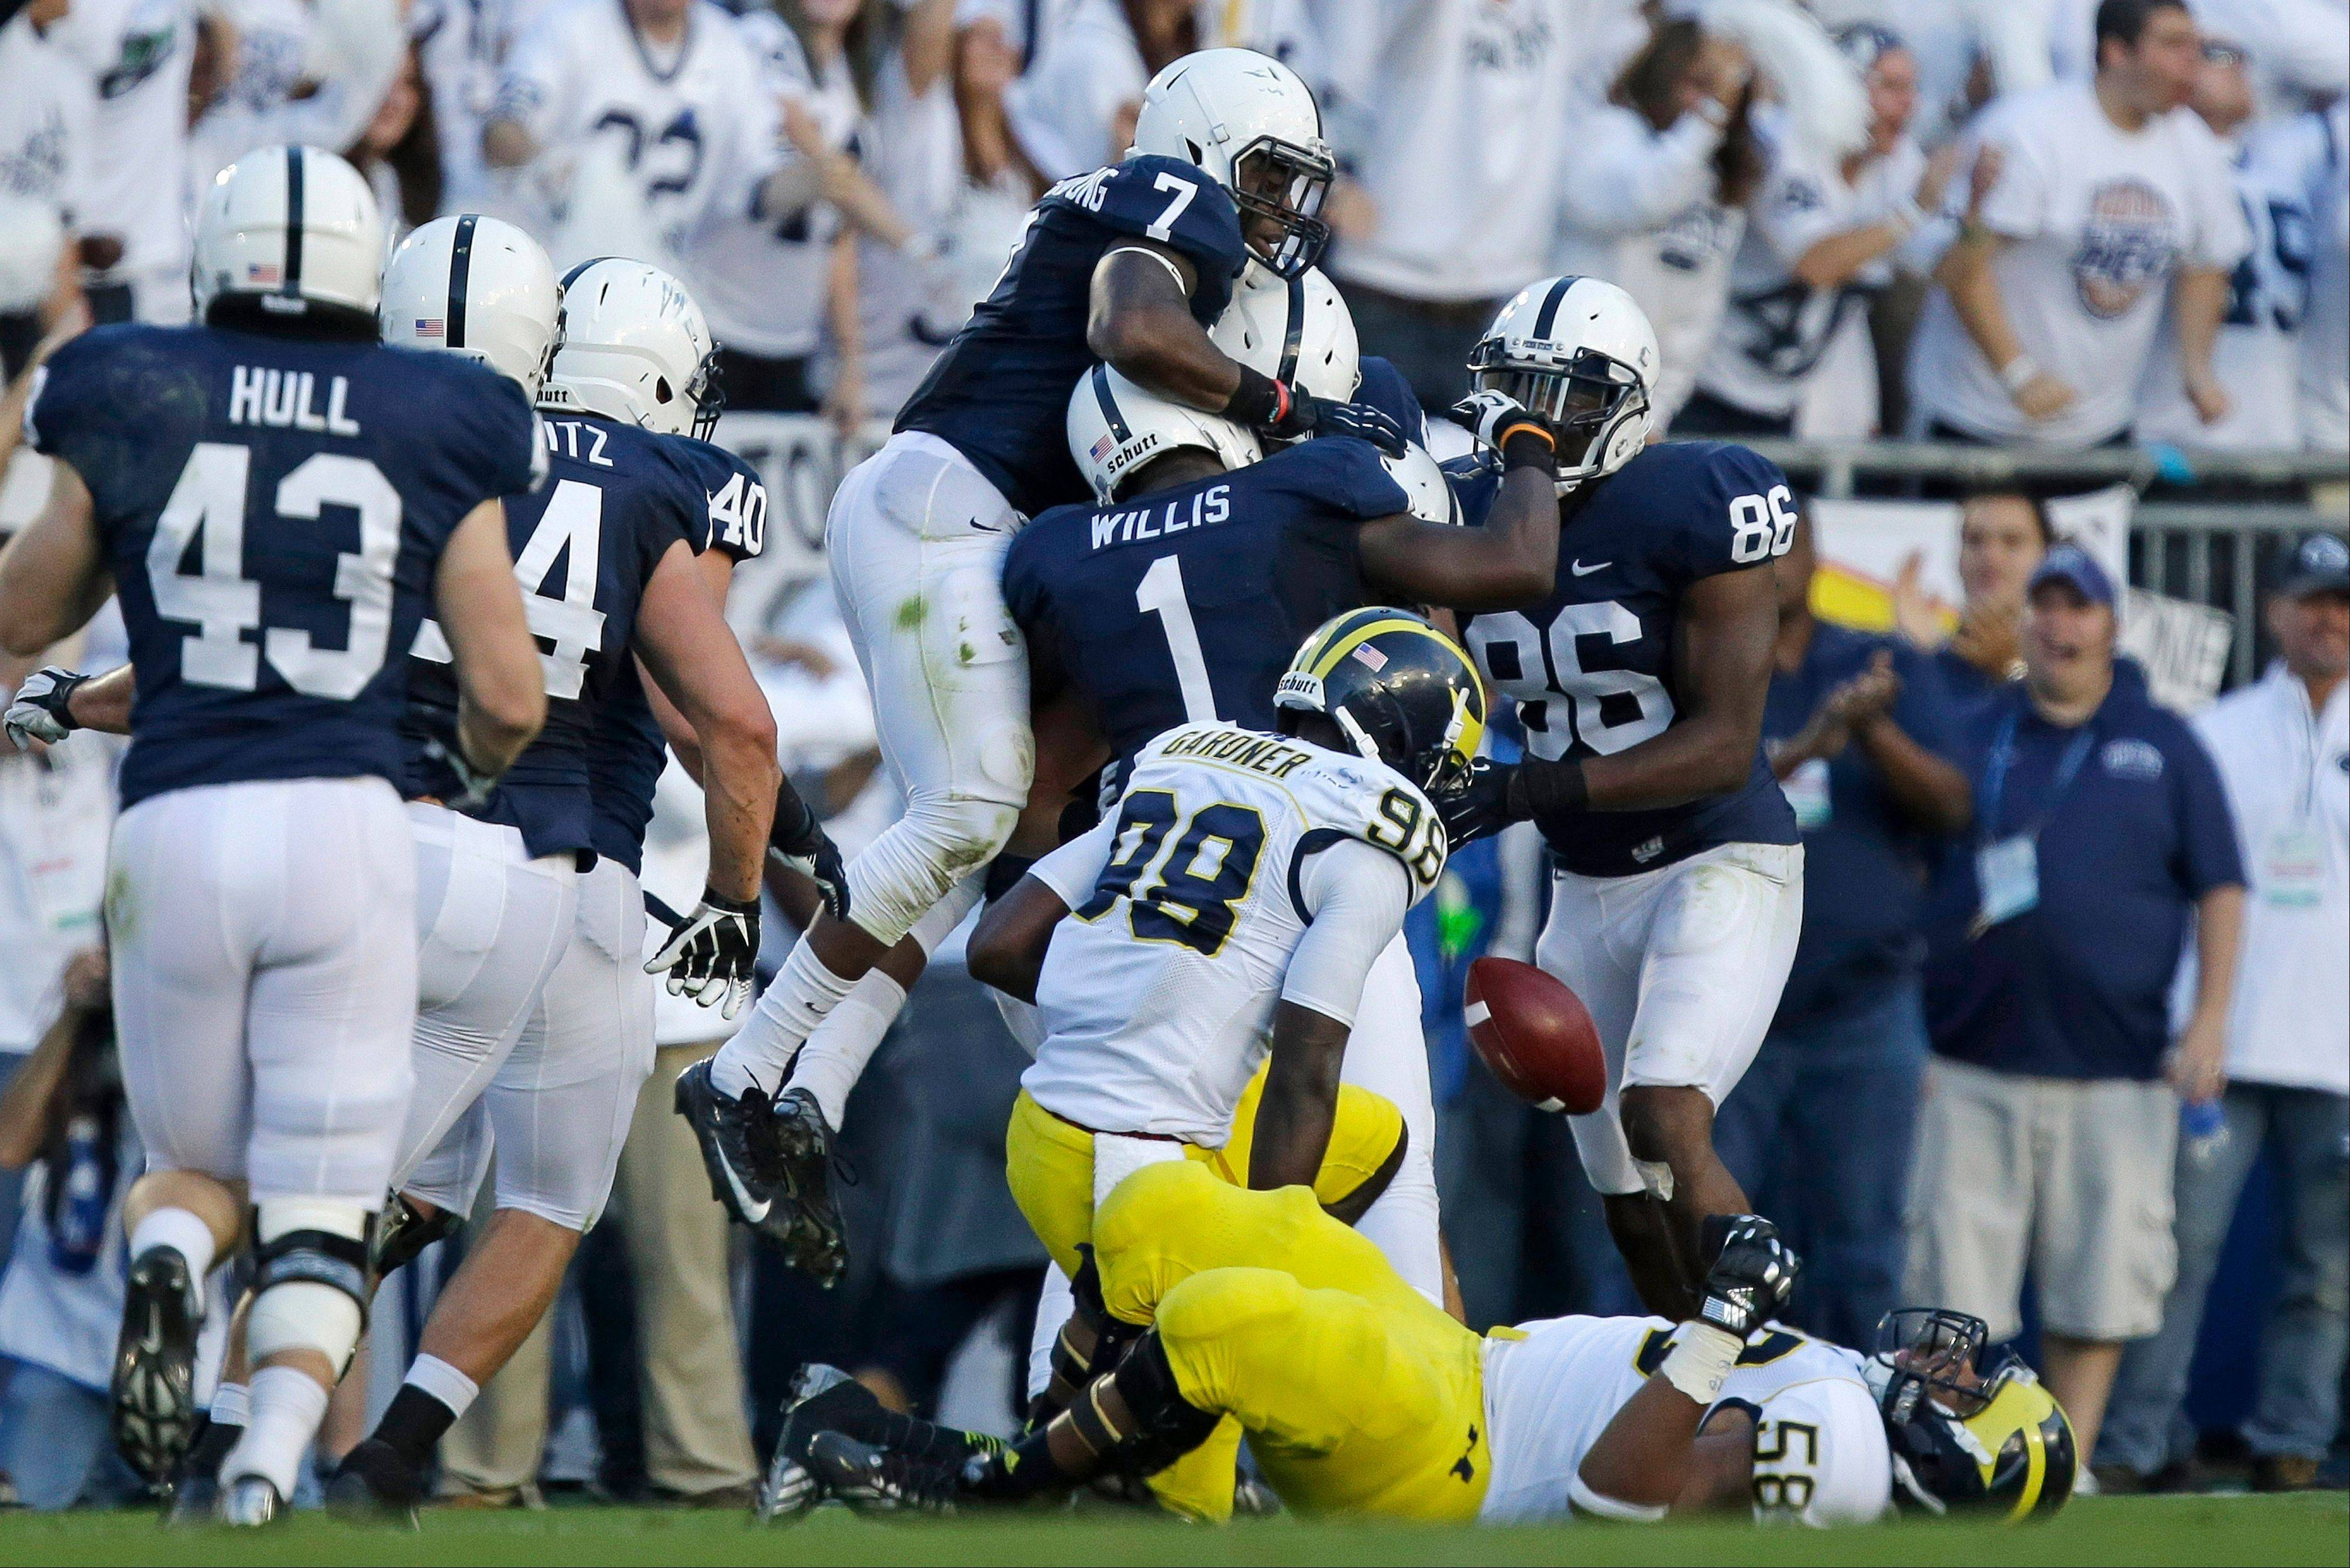 The Penn State defense celebrates an interception by Penn State defensive end Anthony Zettel (98) behind Michigan quarterback Devin Gardner (98) and Michigan offensive linesman Chris Bryant (58) during the second quarter of an NCAA college football game in State College, Pa., Saturday, Oct. 12, 2013.